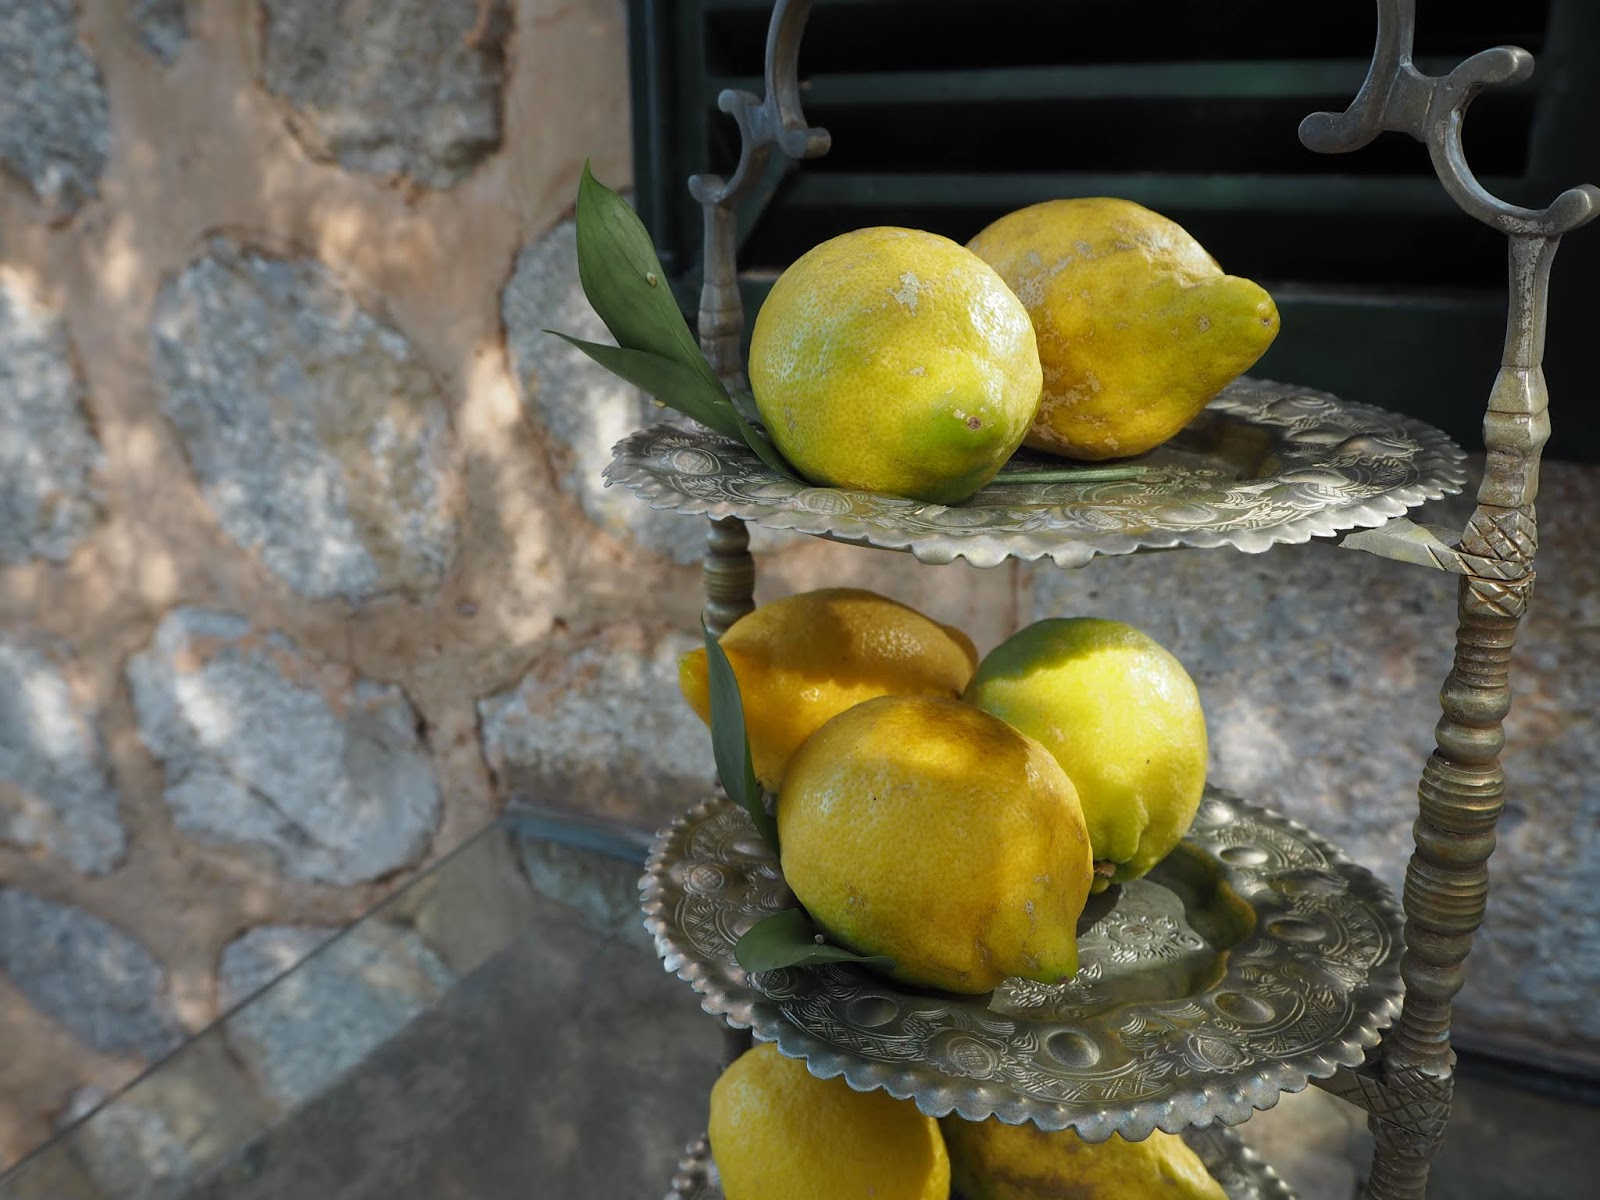 Freshly picked lemons in mallorca